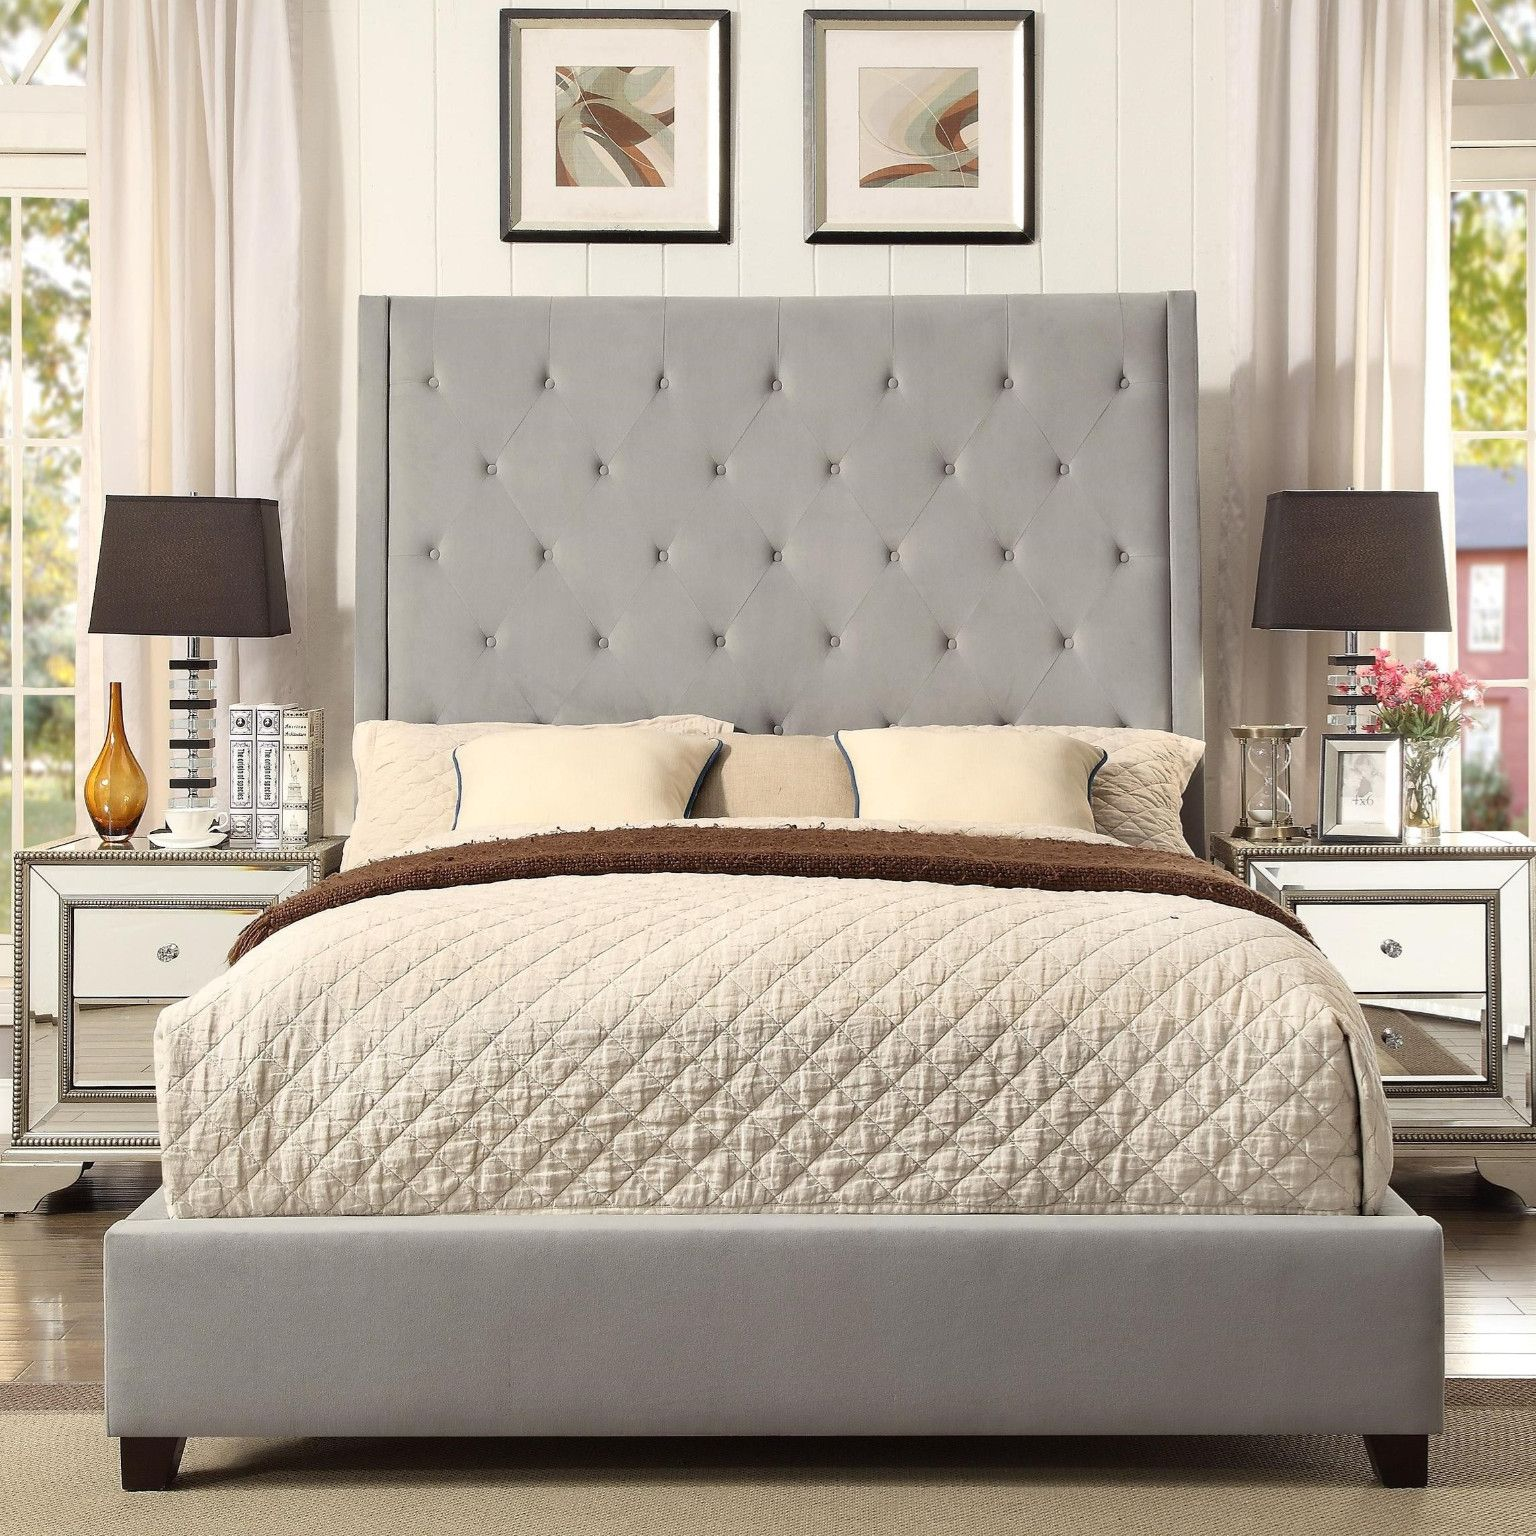 Reese Bed Diamond Tufted in Grey Queen $399.00 92\